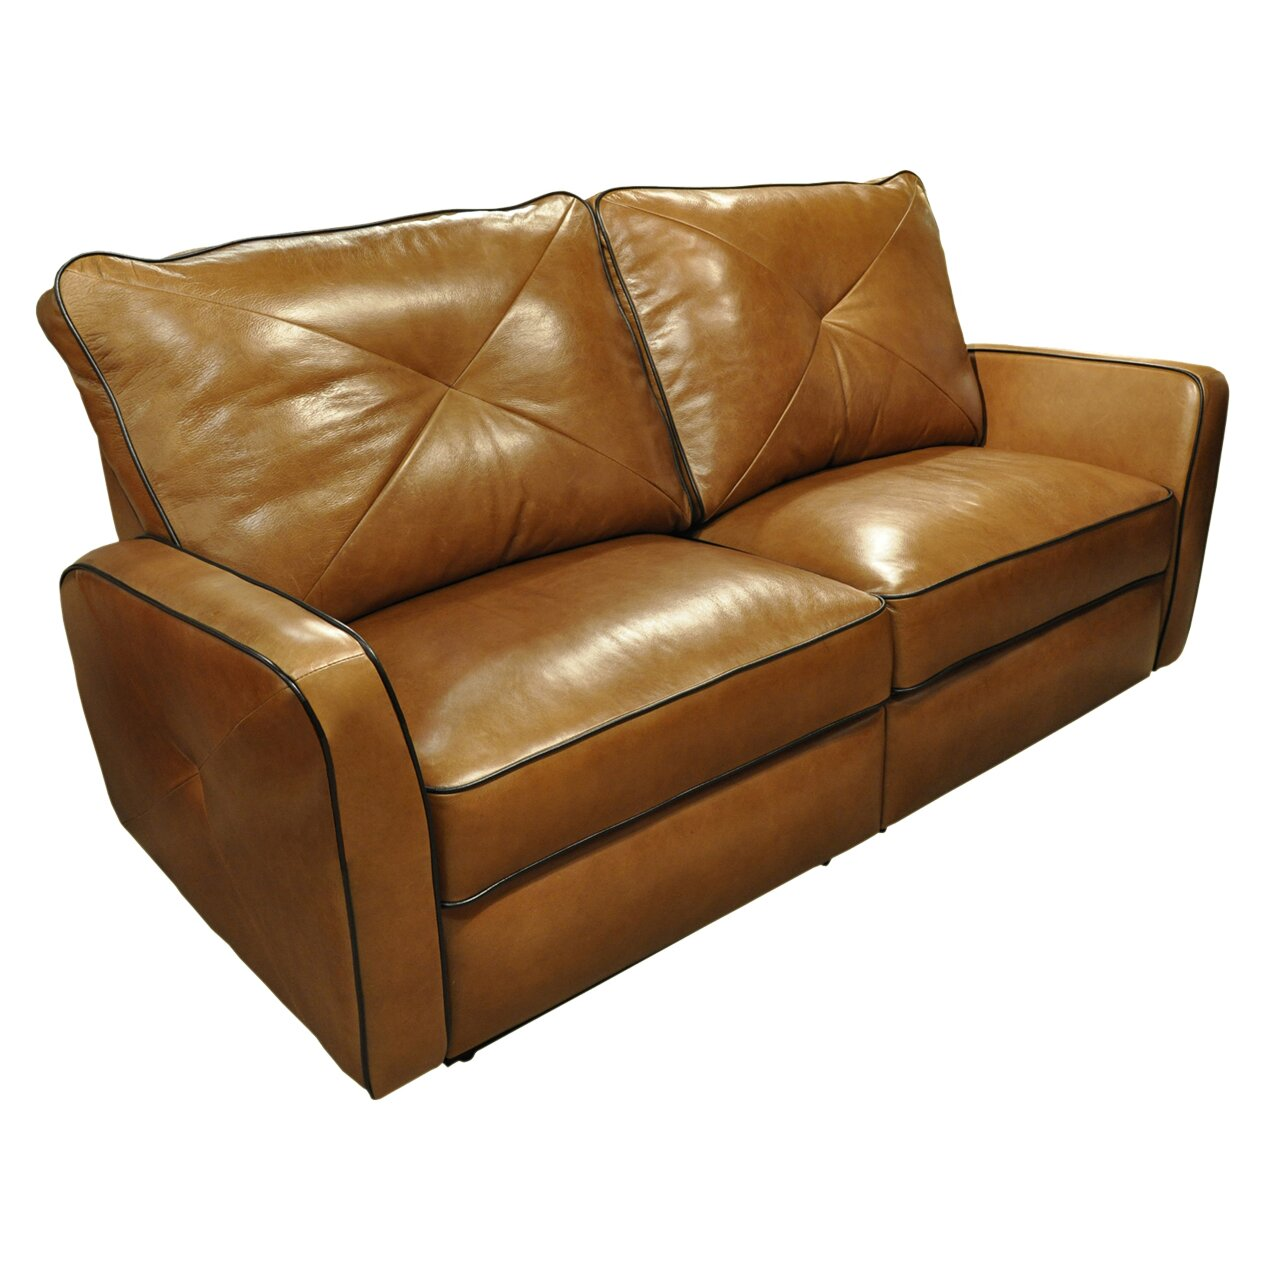 Omnia leather bahama leather reclining loveseat reviews for Leather reclining sofa